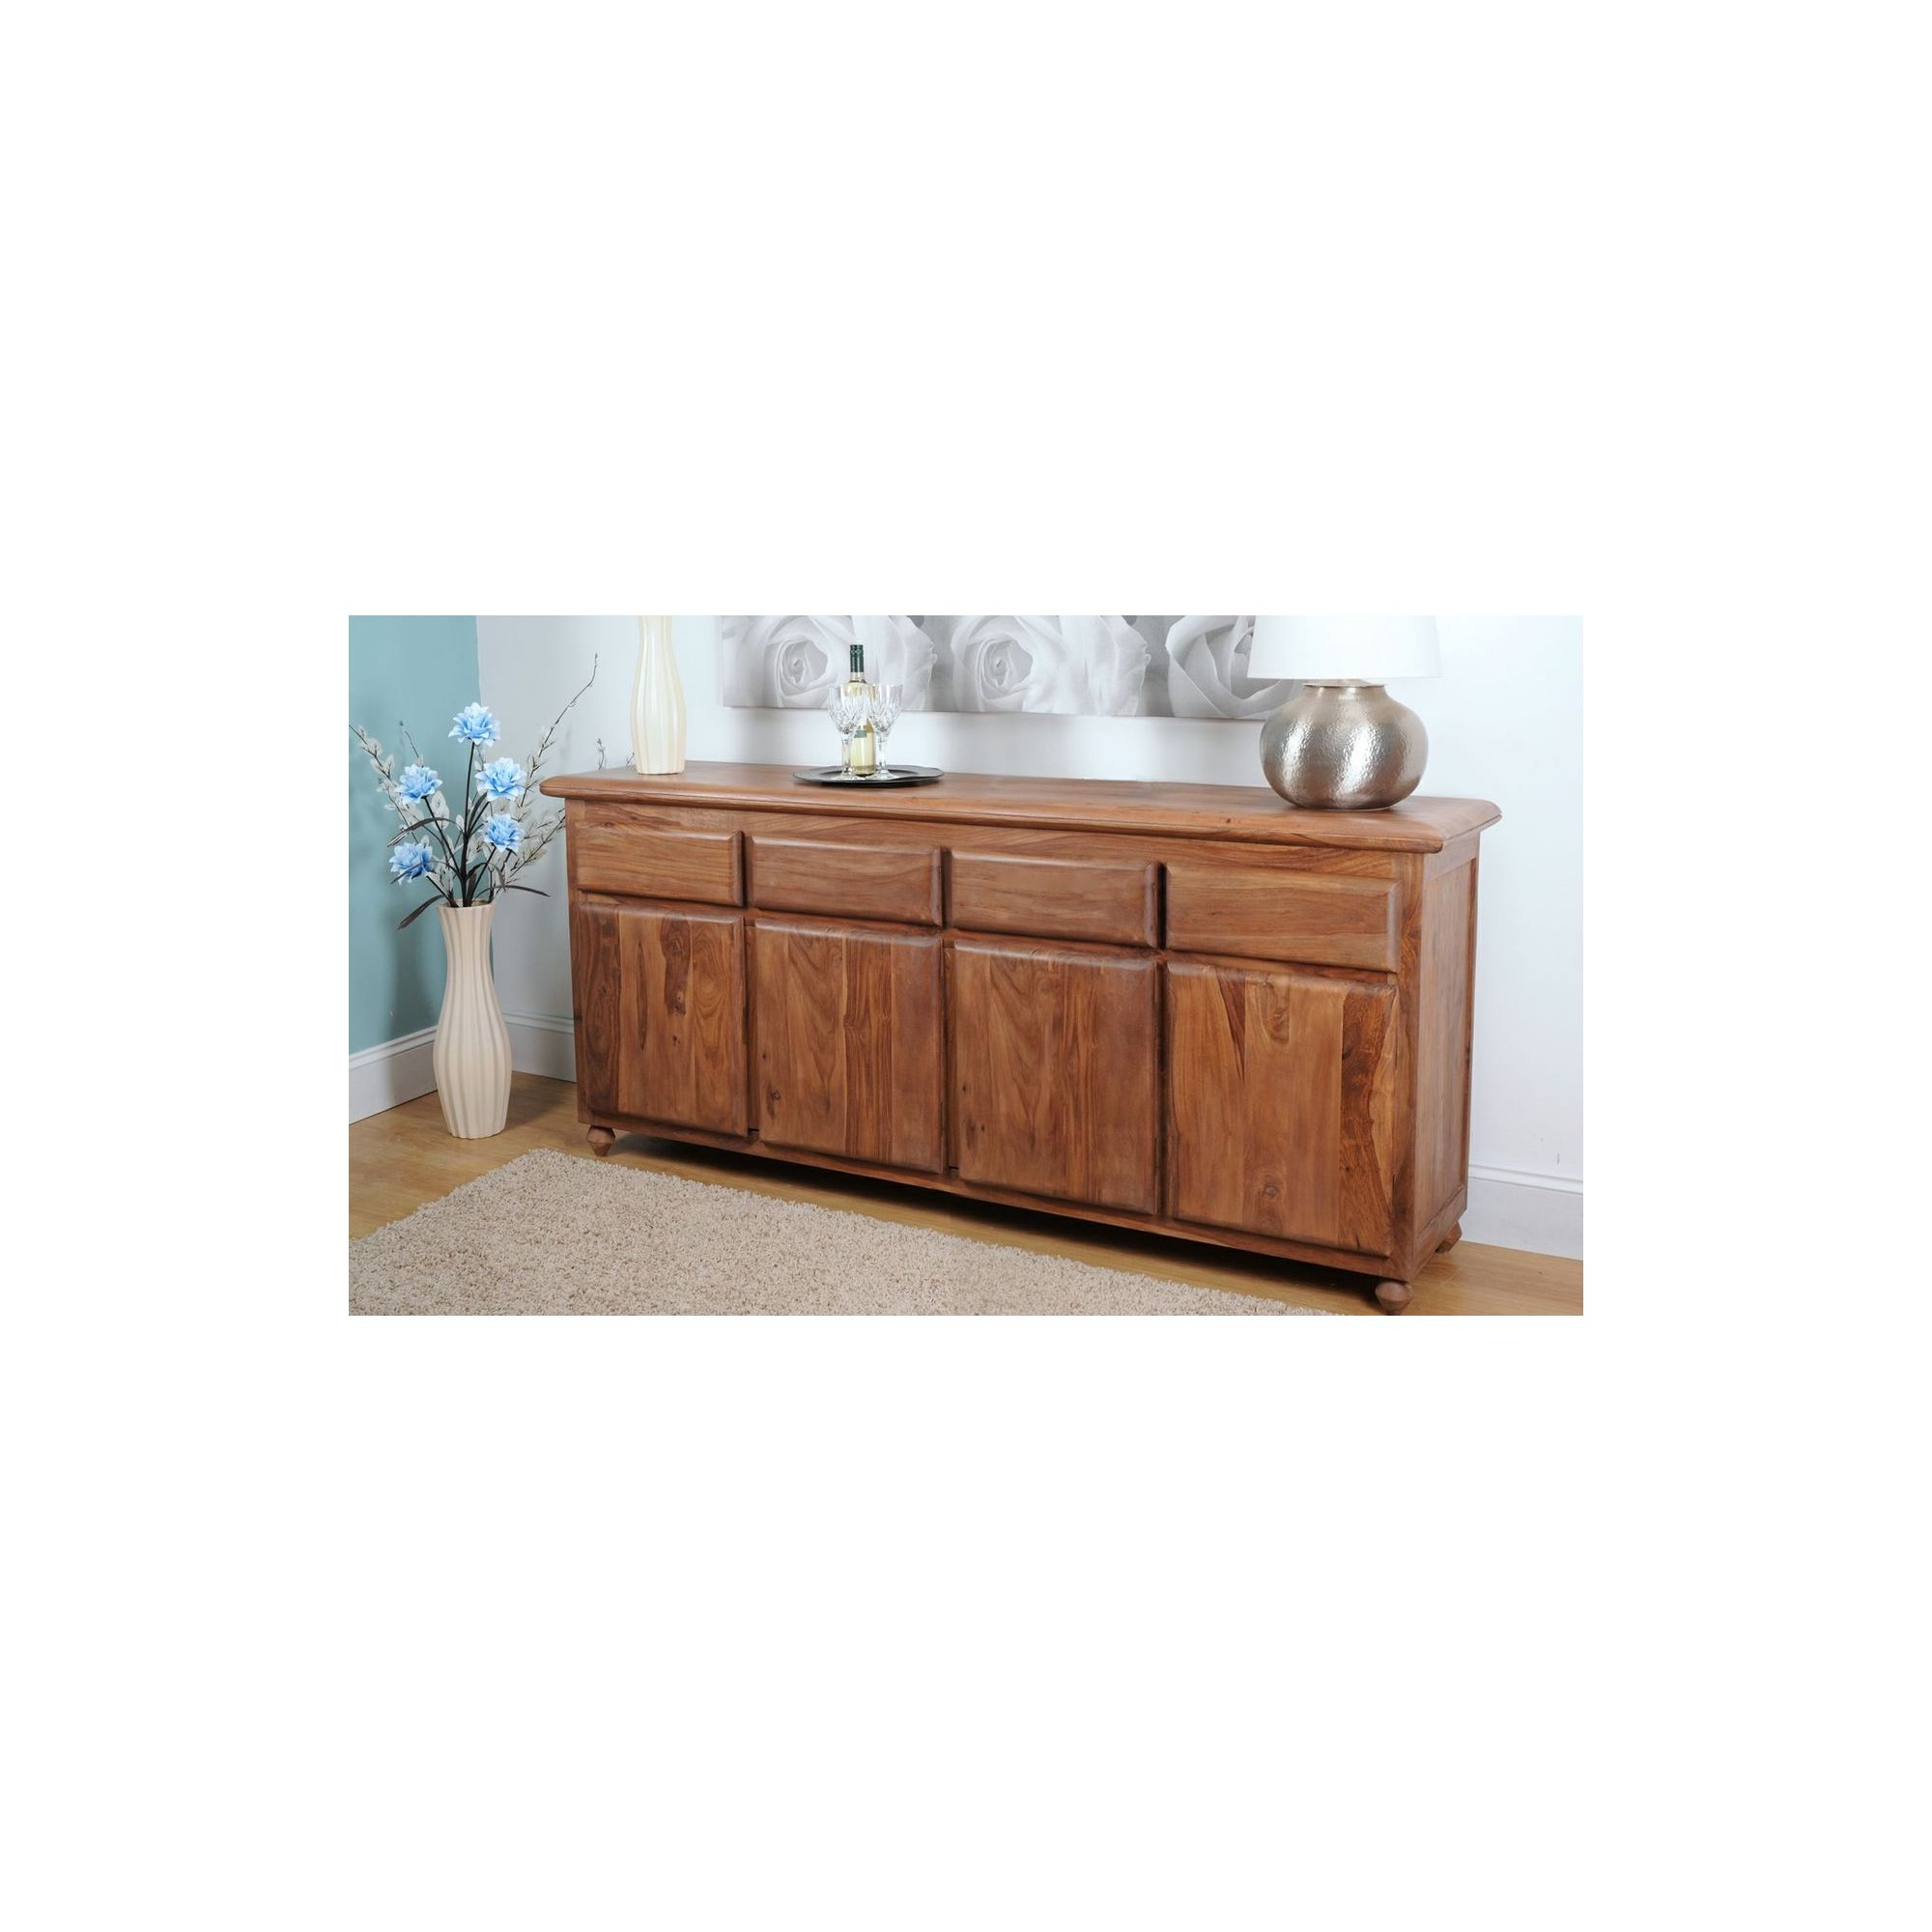 Shankar Enterprises Mundra Master Sideboard at Tesco Direct